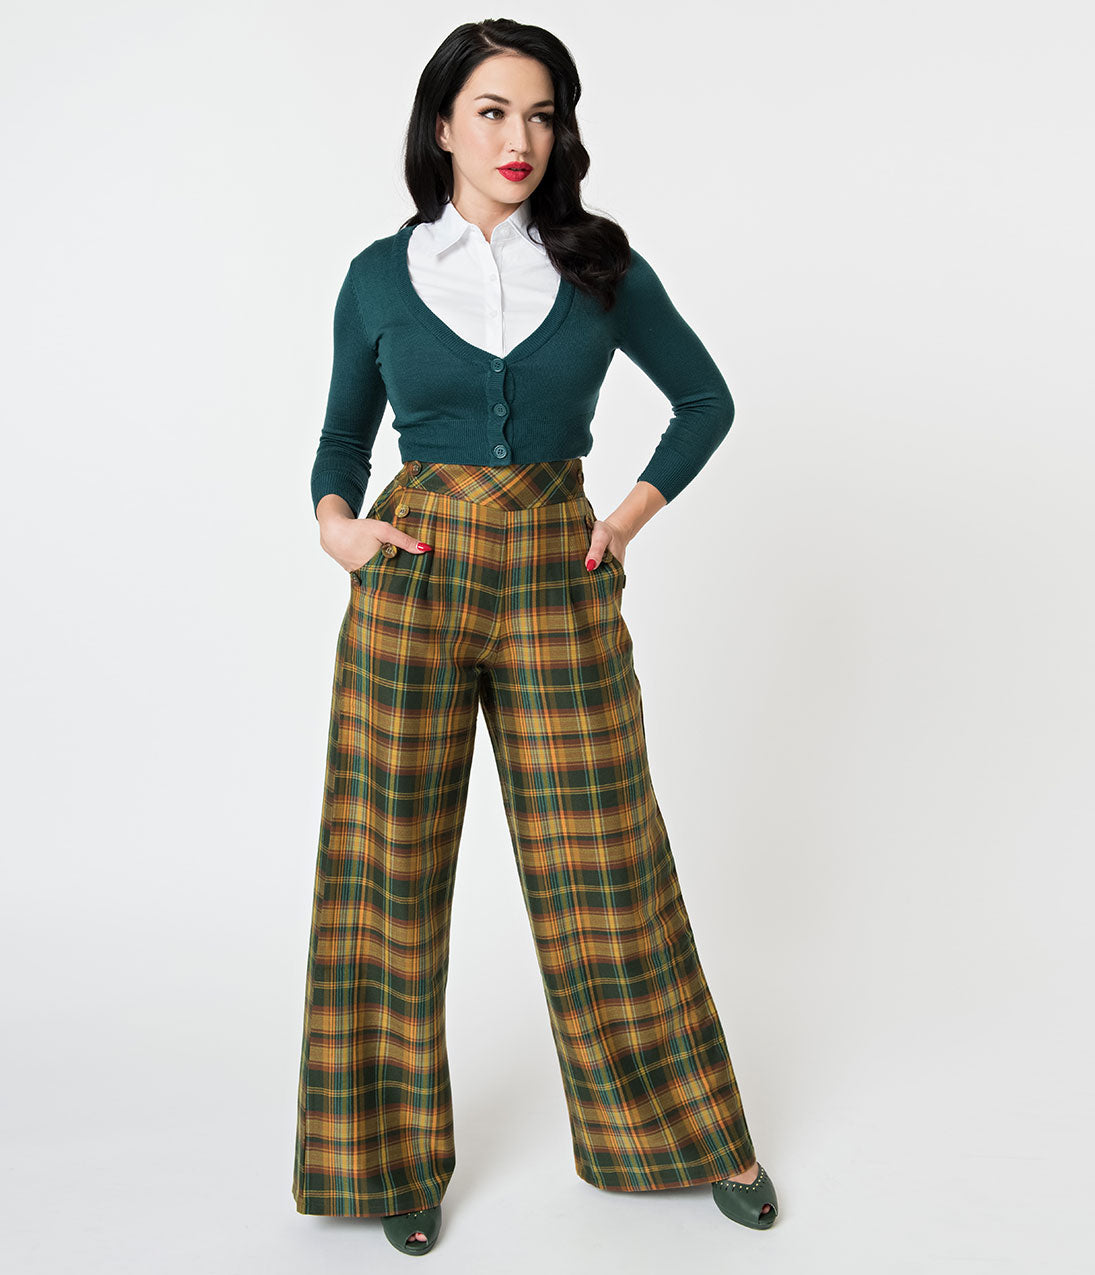 1940s Swing Pants & Sailor Trousers- Wide Leg, High Waist Voodoo Vixen 1940S Mustard  Olive Plaid High Waisted Flared Pants $64.00 AT vintagedancer.com